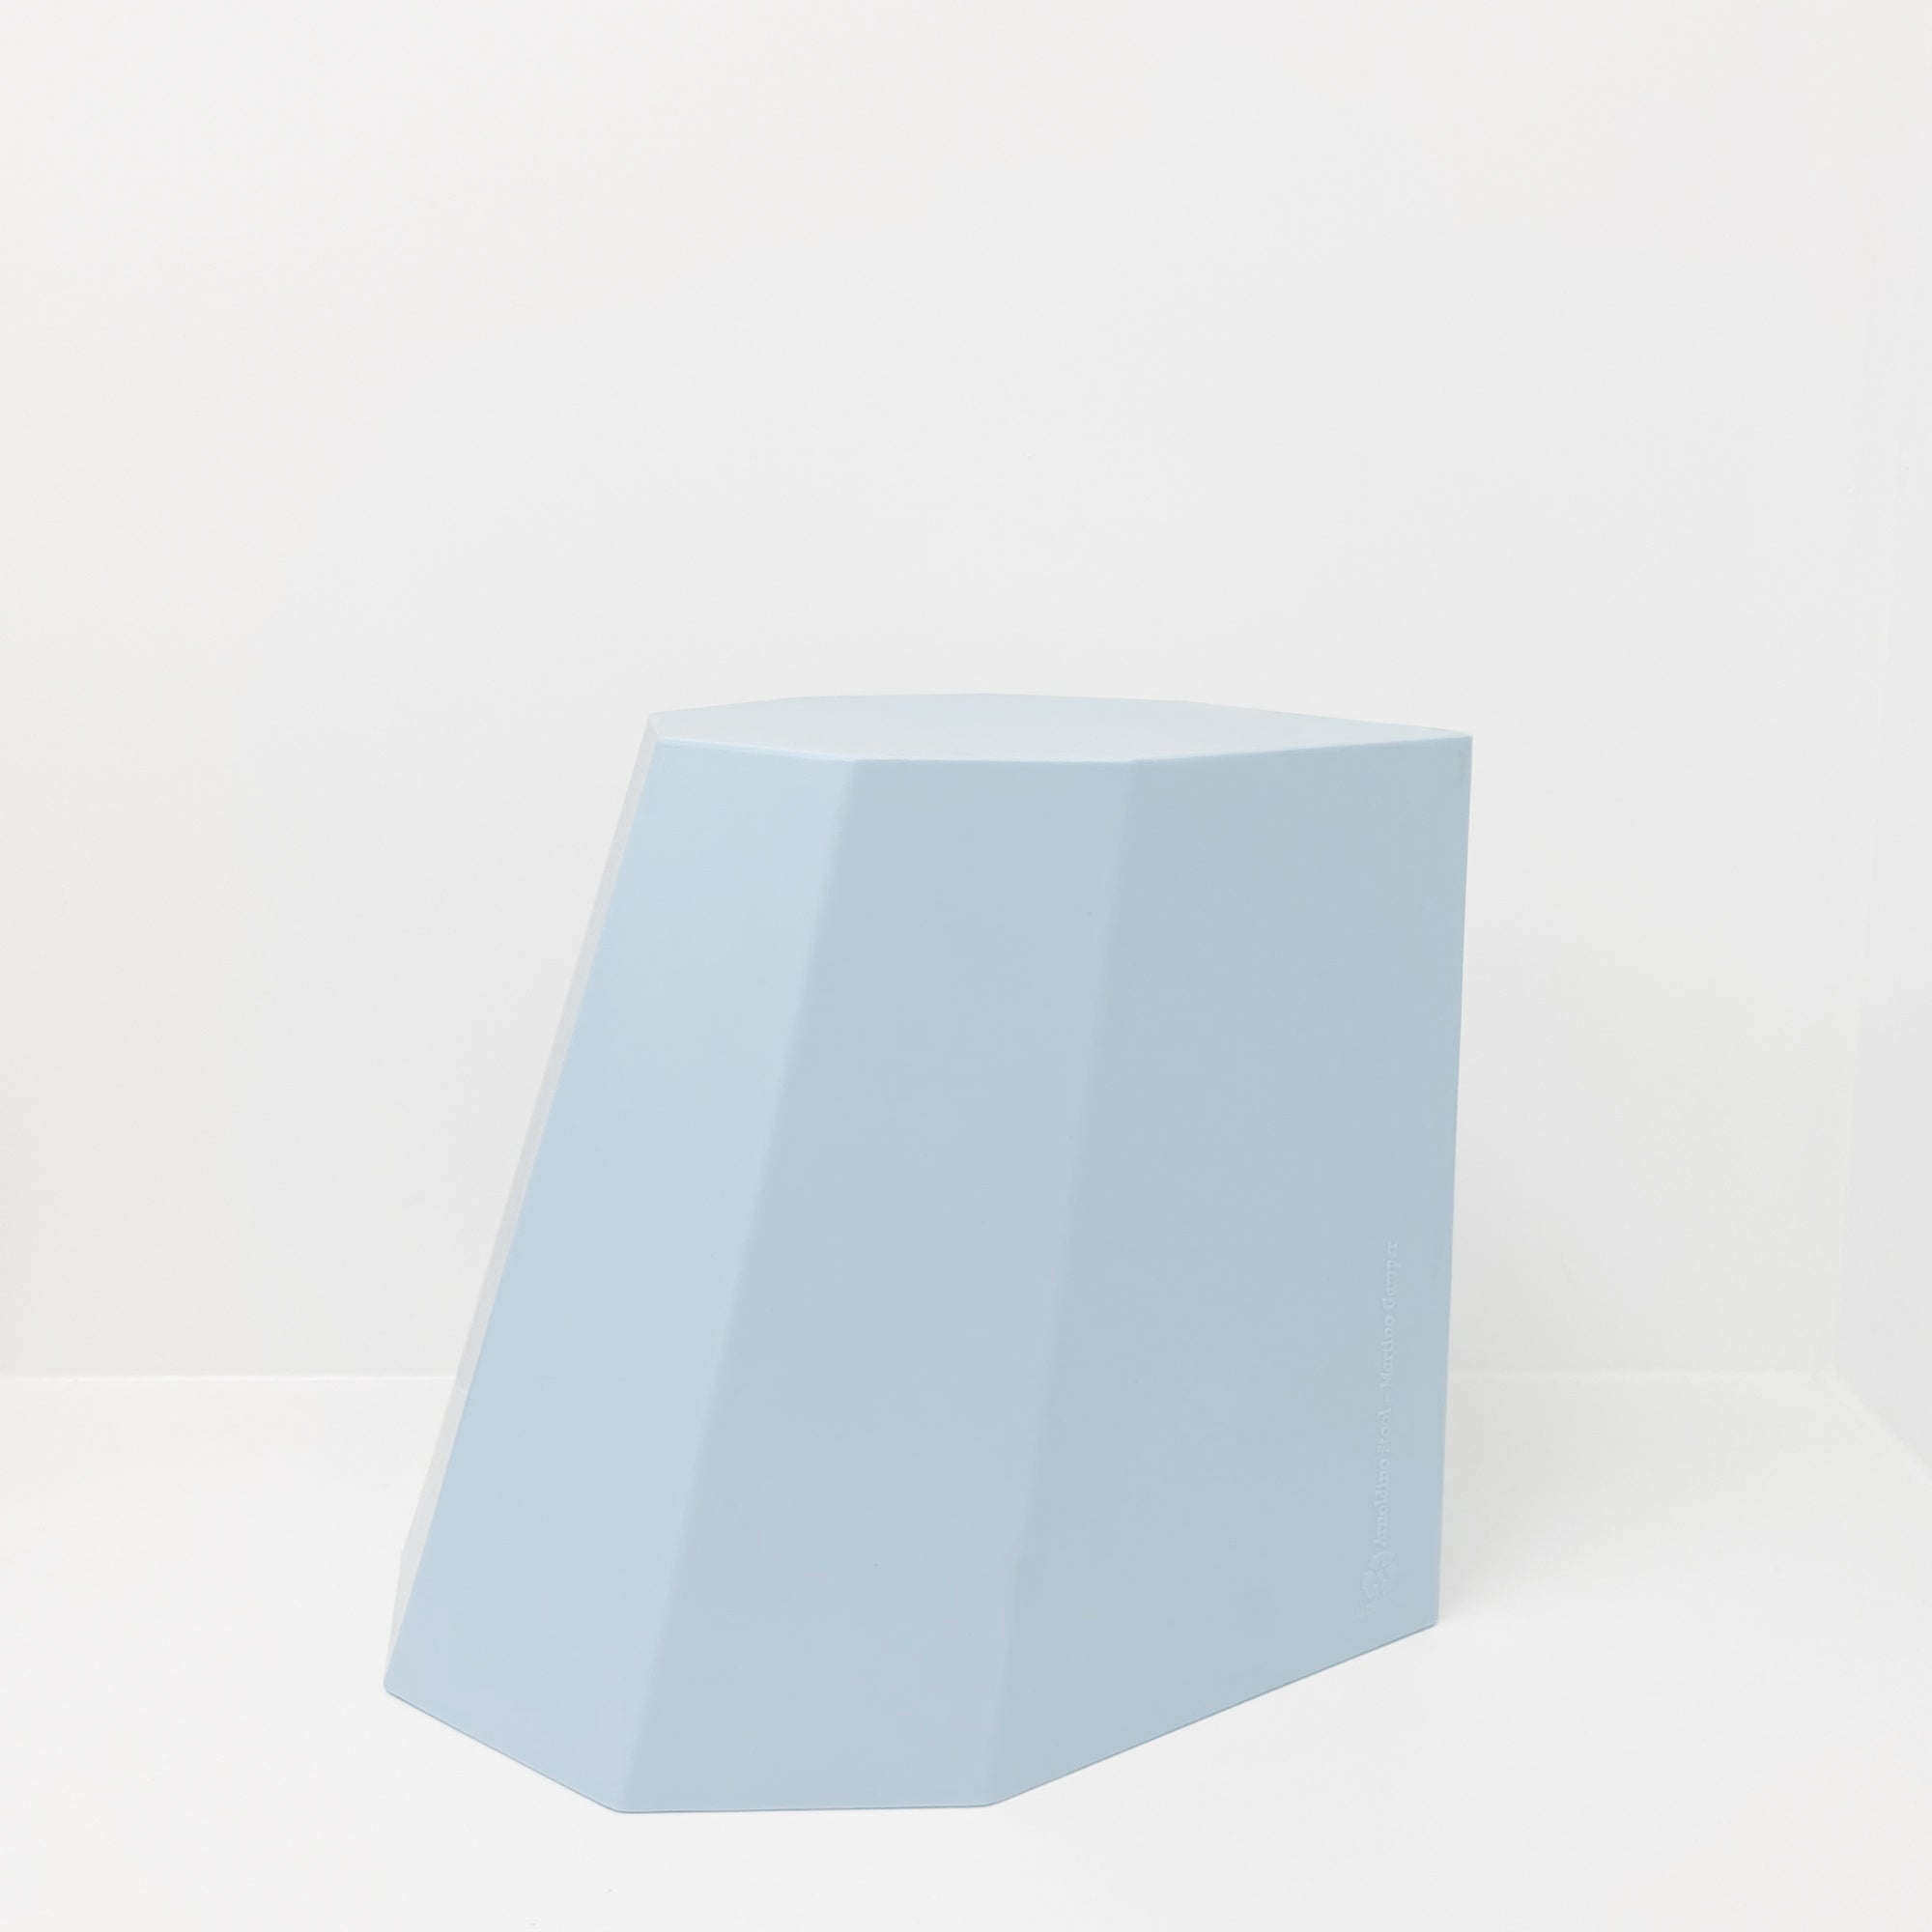 Martino Gamper Arnoldino Stool - Light Blue - Paper Plane - Mount Maunganui Stockist